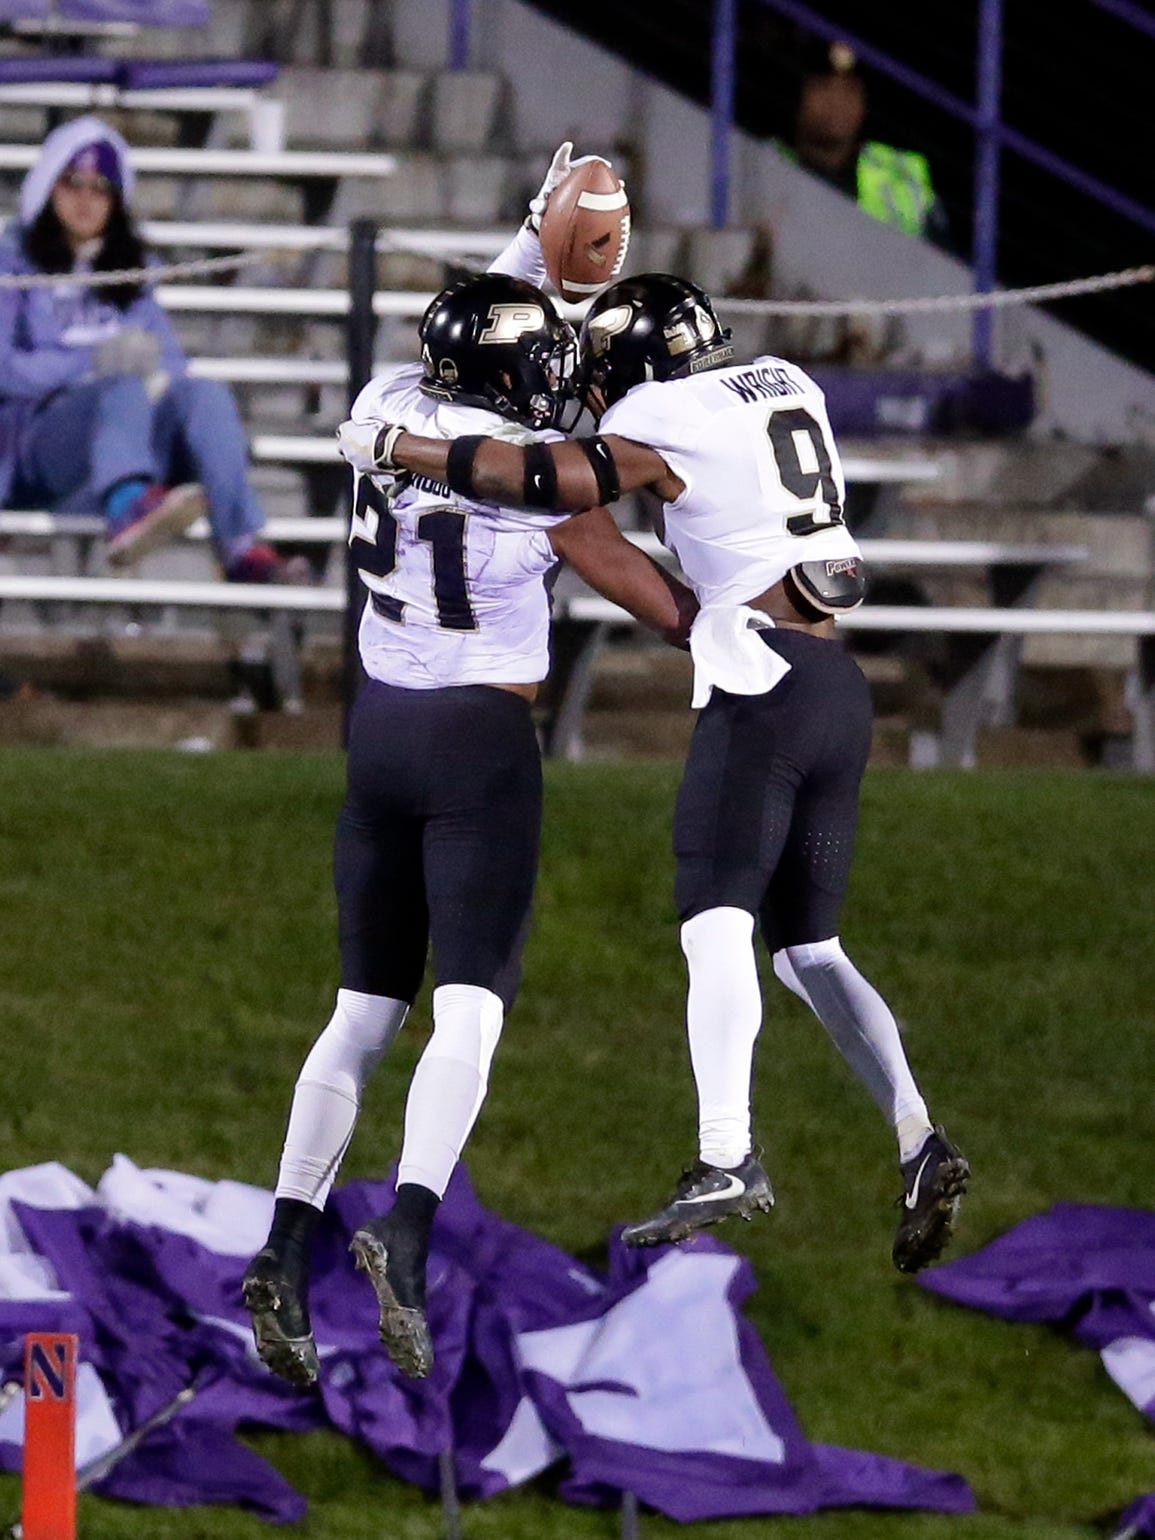 Purdue wide receiver Anthony Mahoungou, left, celebrates